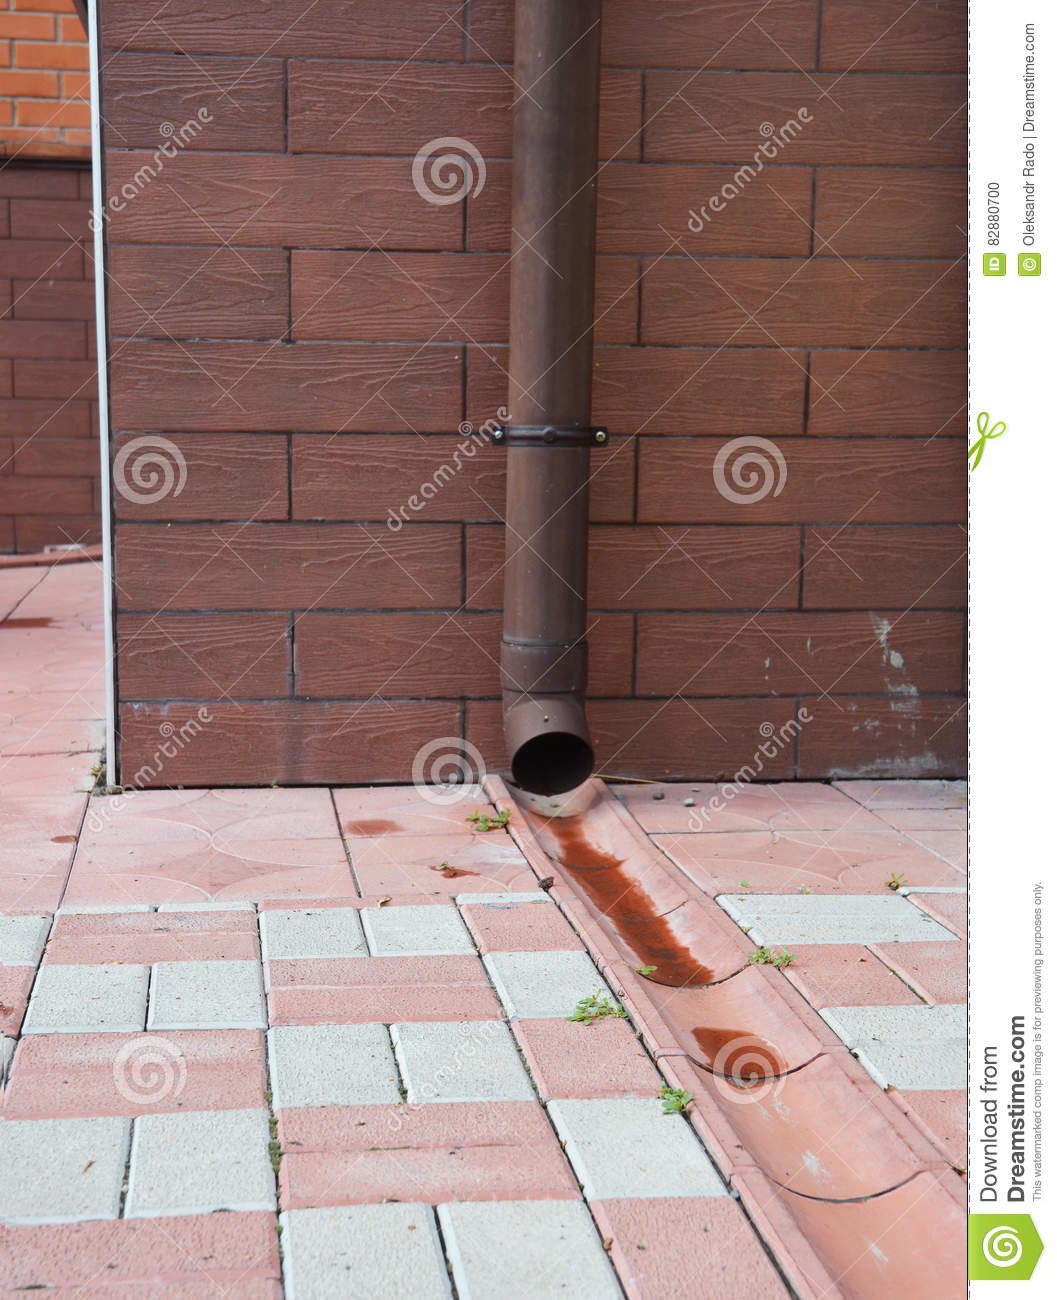 Roof downspout gutter and downspout near the roof of a for House roof drain pipes